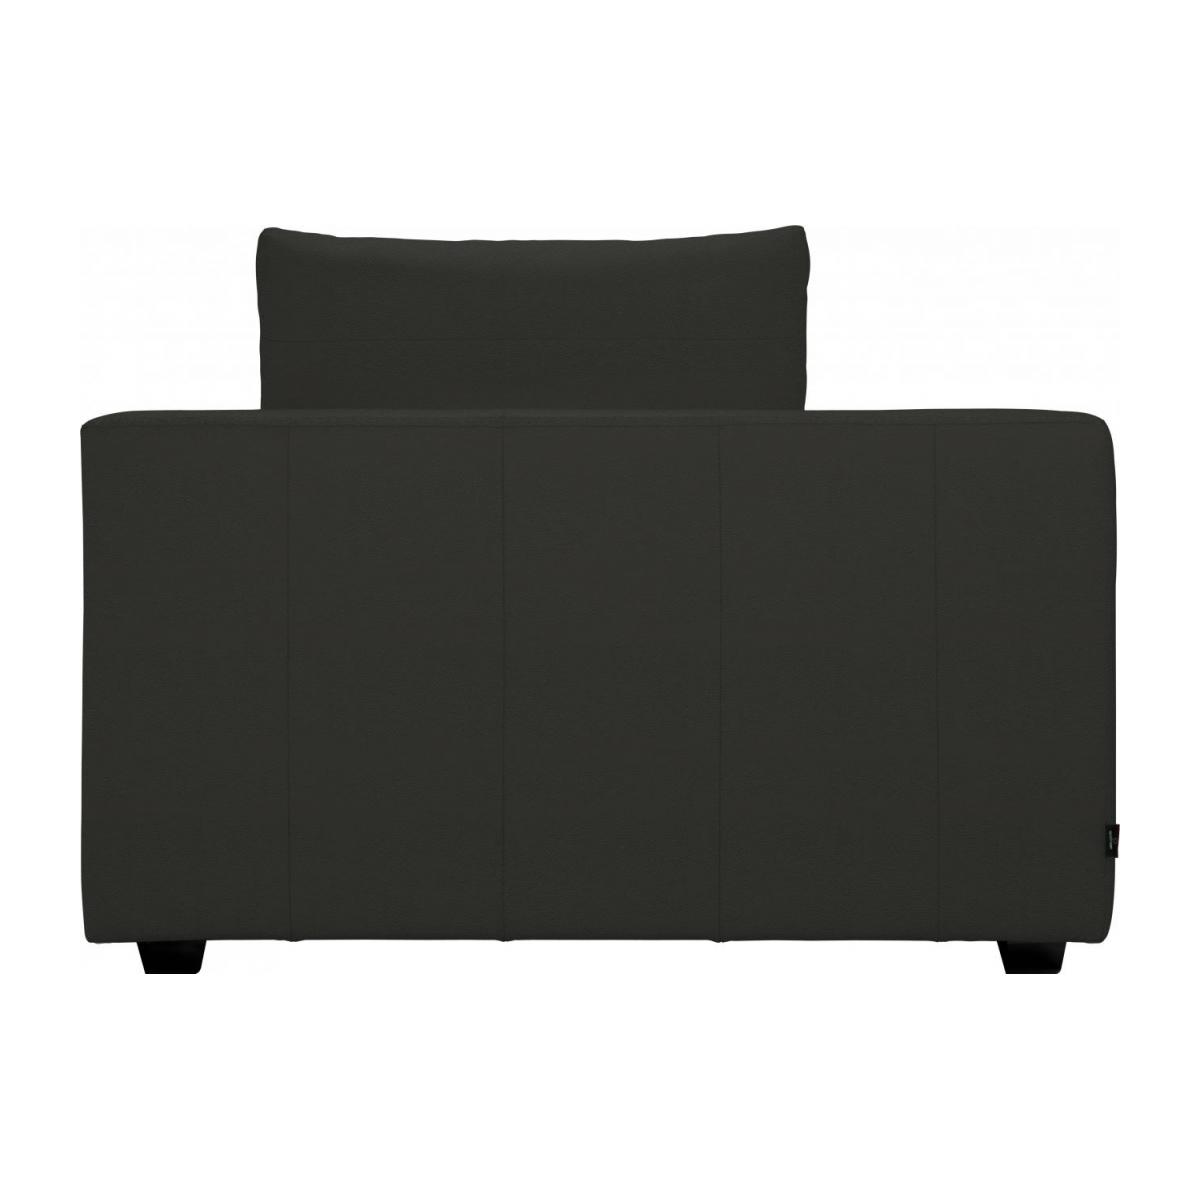 1,5 seater sofa with left armrest in Eton veined leather, brown n°4